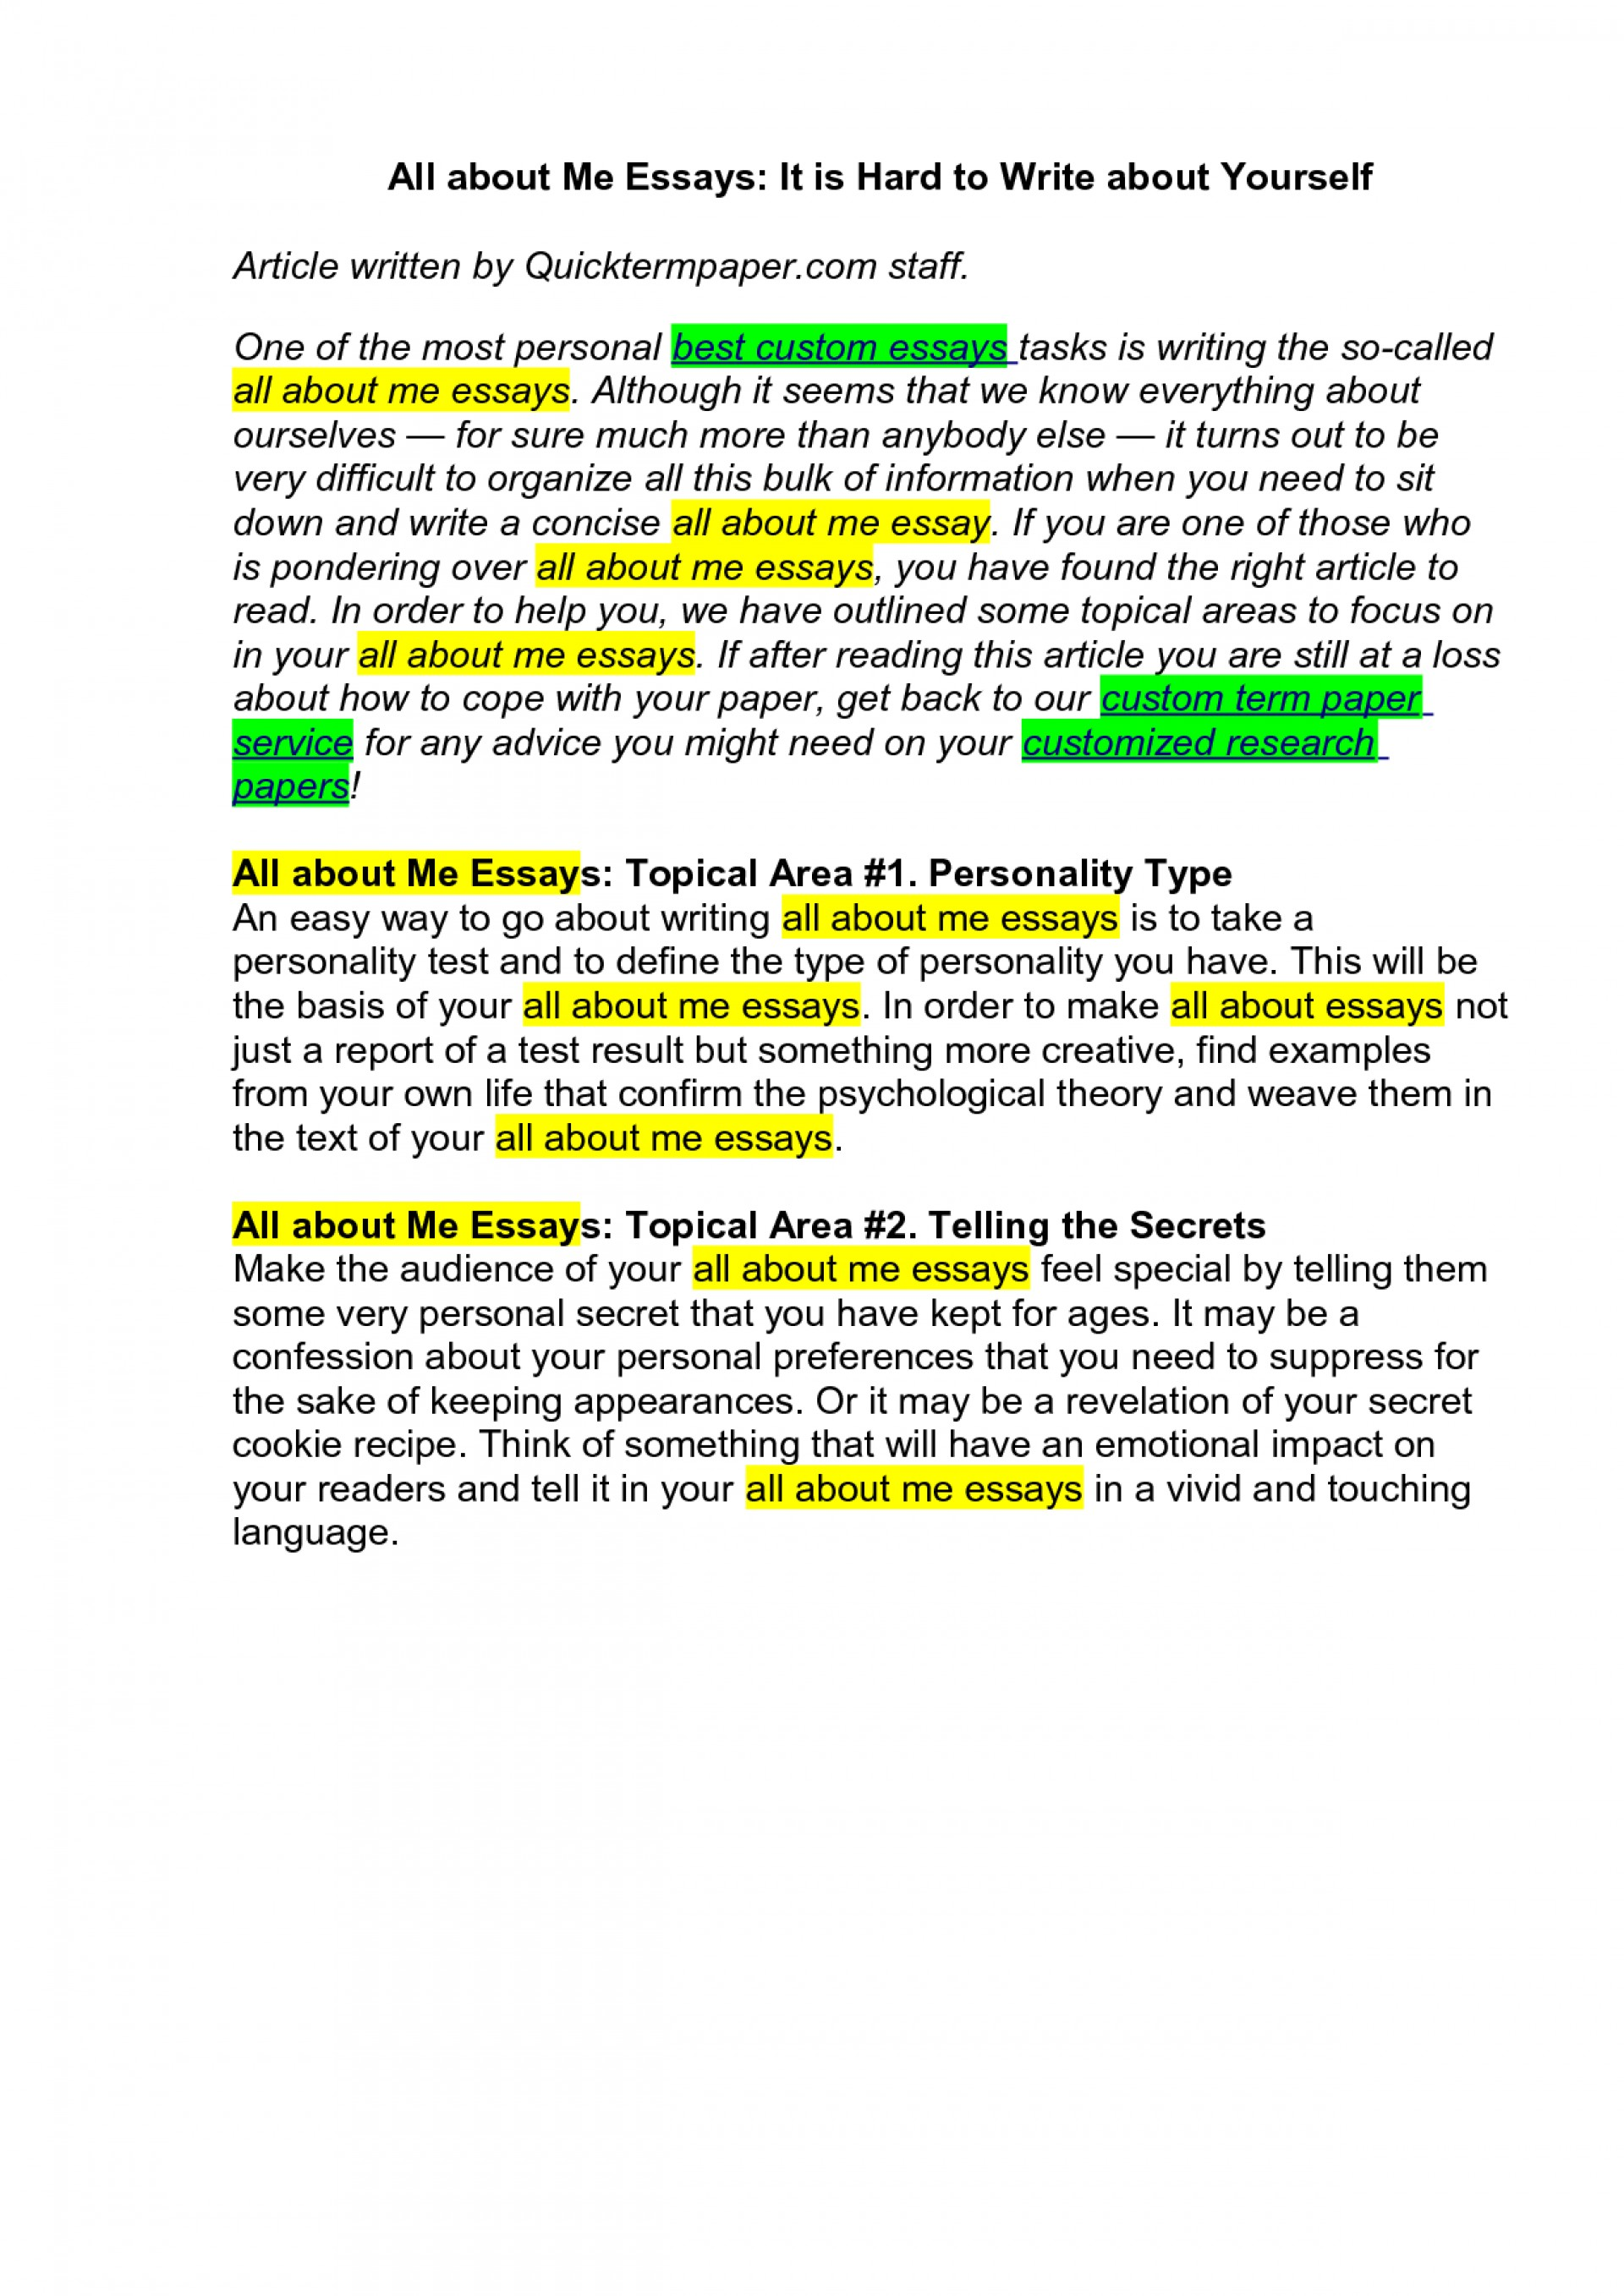 021 Essay Example How To Start An Amazing With A Hook Quote Analysis On Book 1920